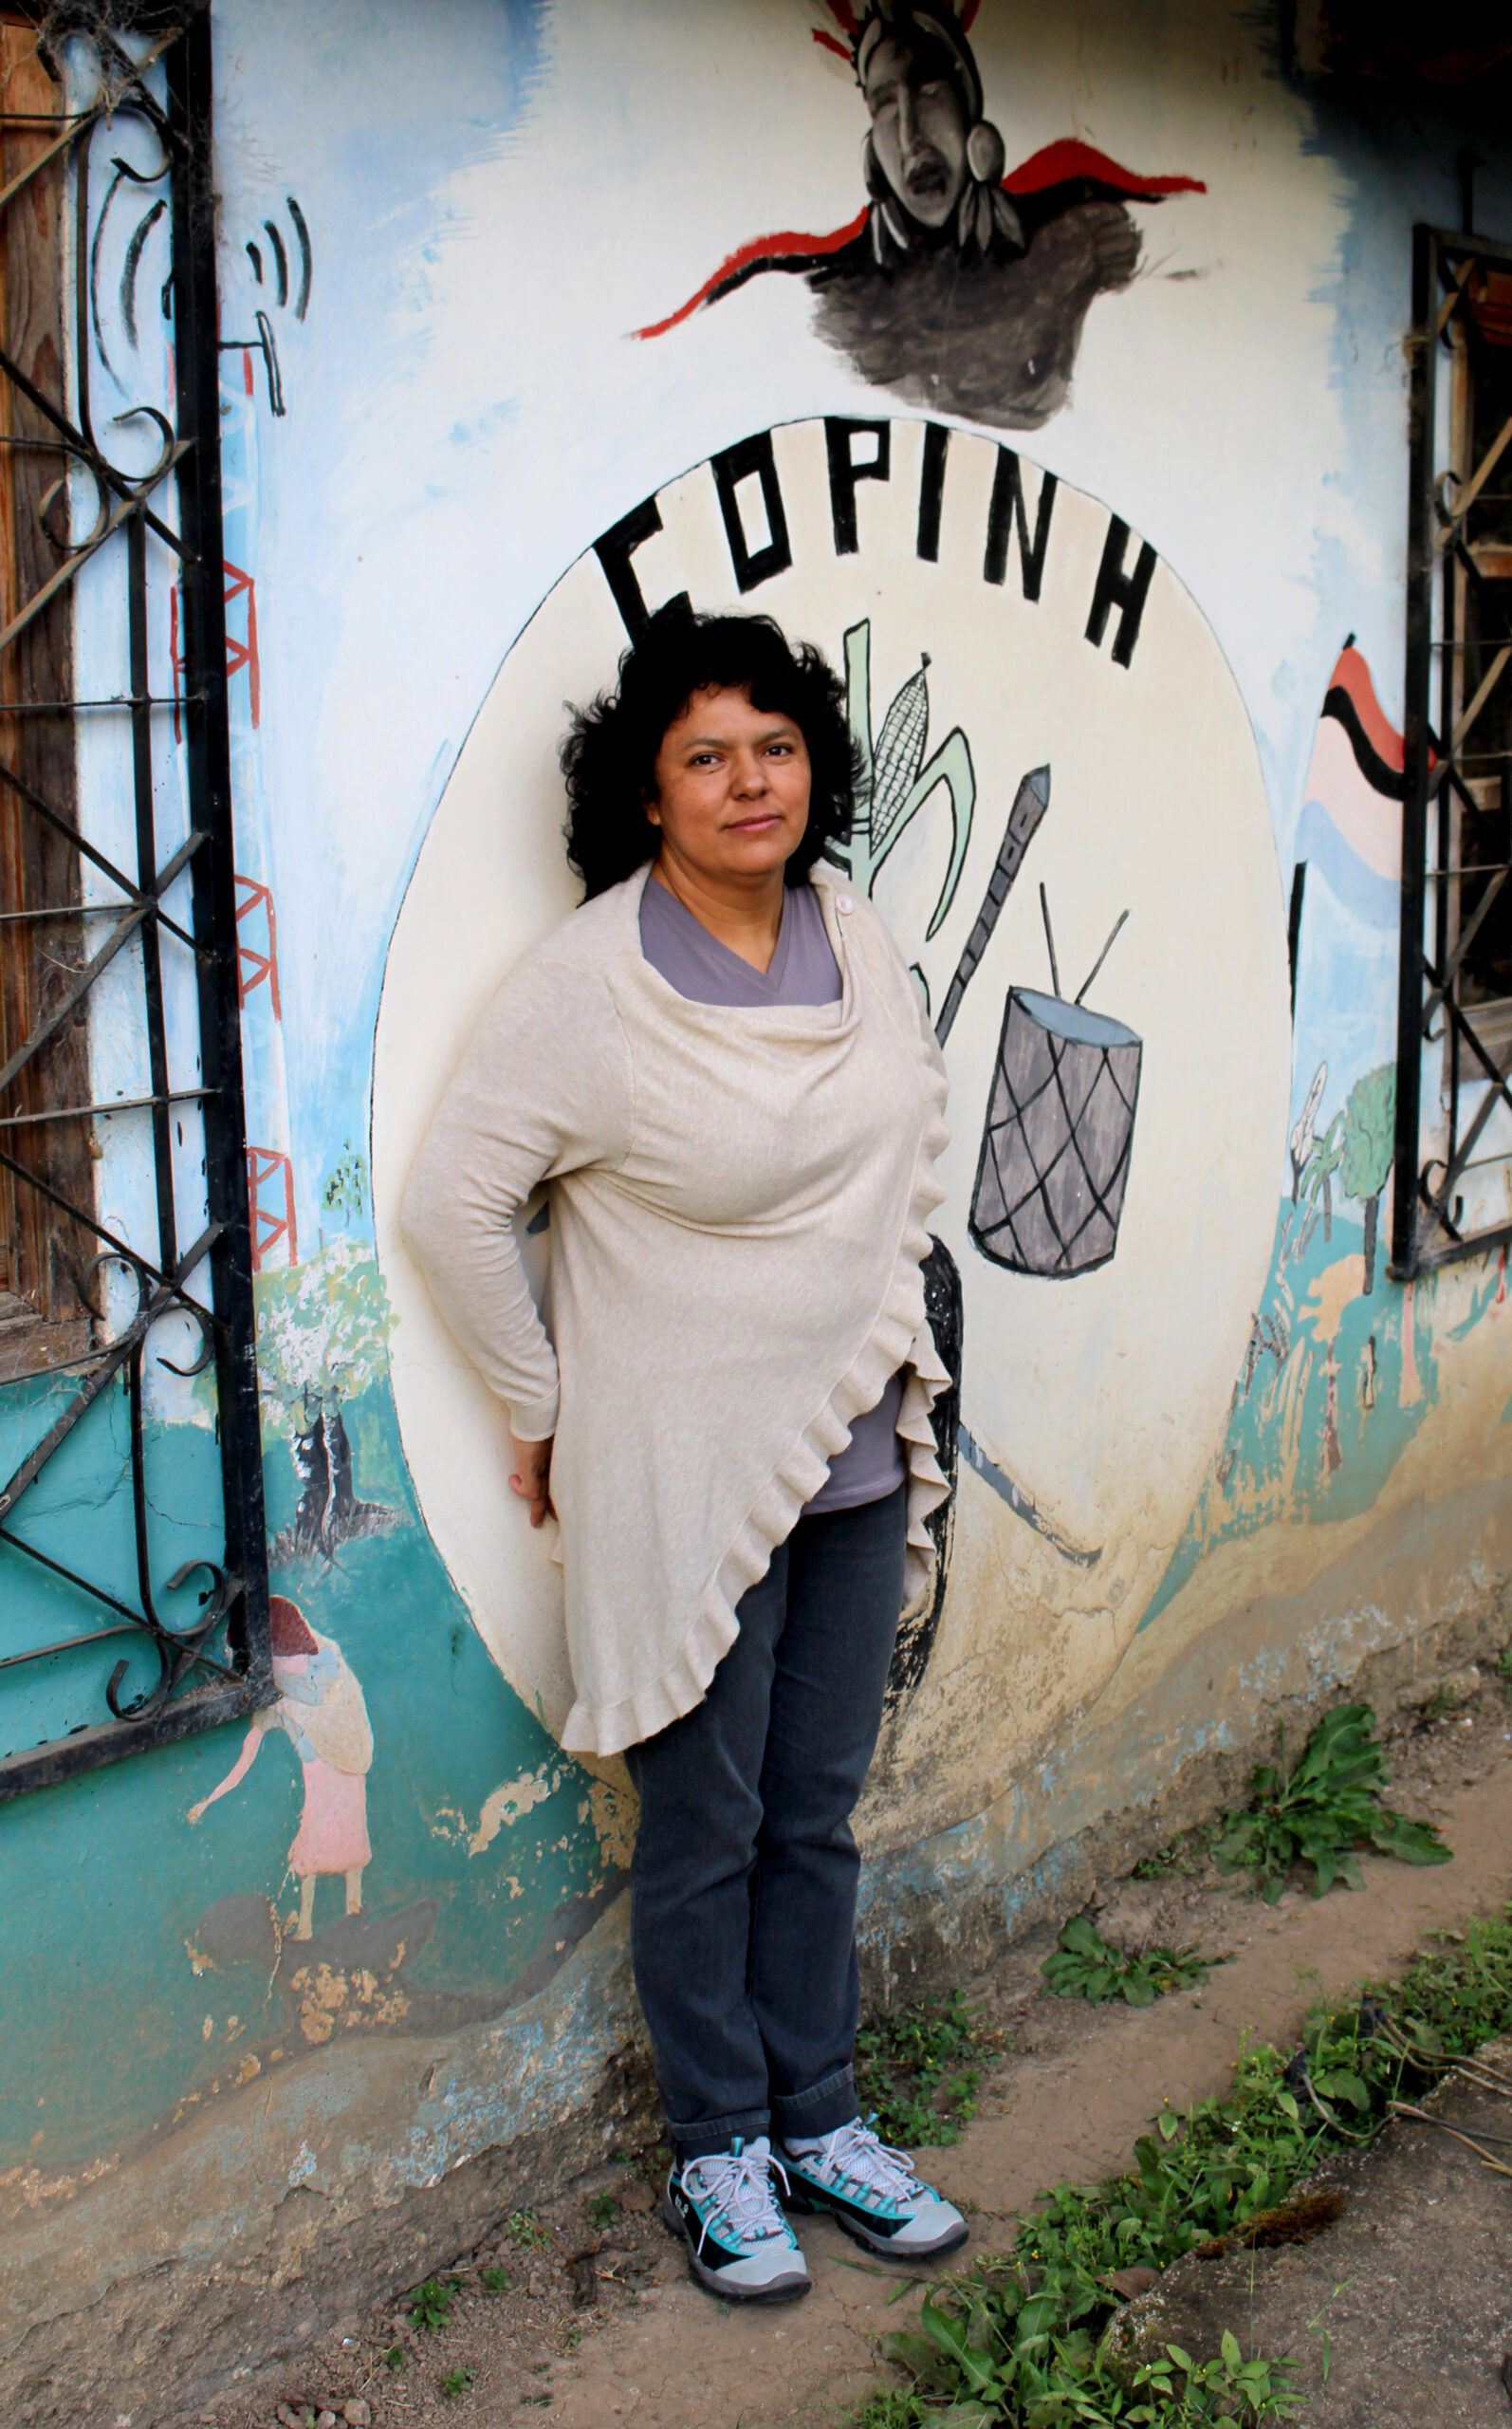 Women challenging corporate power: Berta Caceres stands at the COPINH (the Council of Popular and Indigenous Organizations of Honduras) offices in La Esperanza, Intibucá, Honduras.